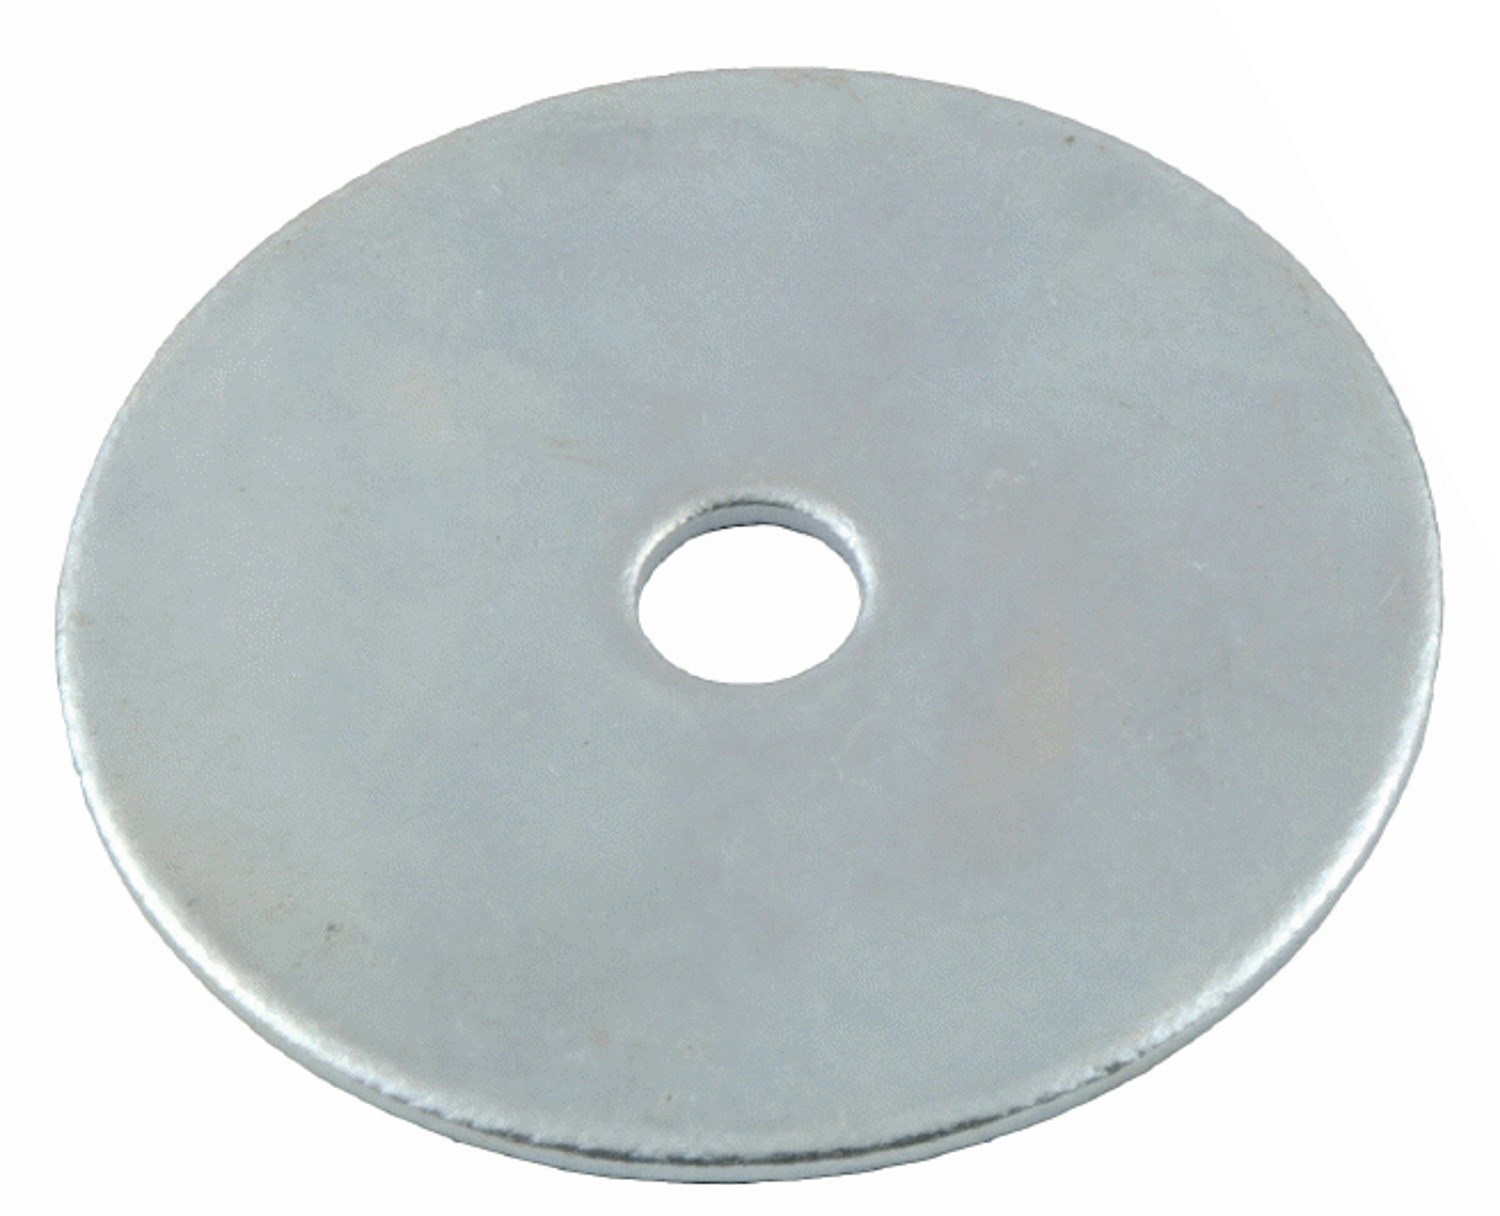 Fastener Centre Repair Washers - M10 | Nuts, Bolts & Washers ...